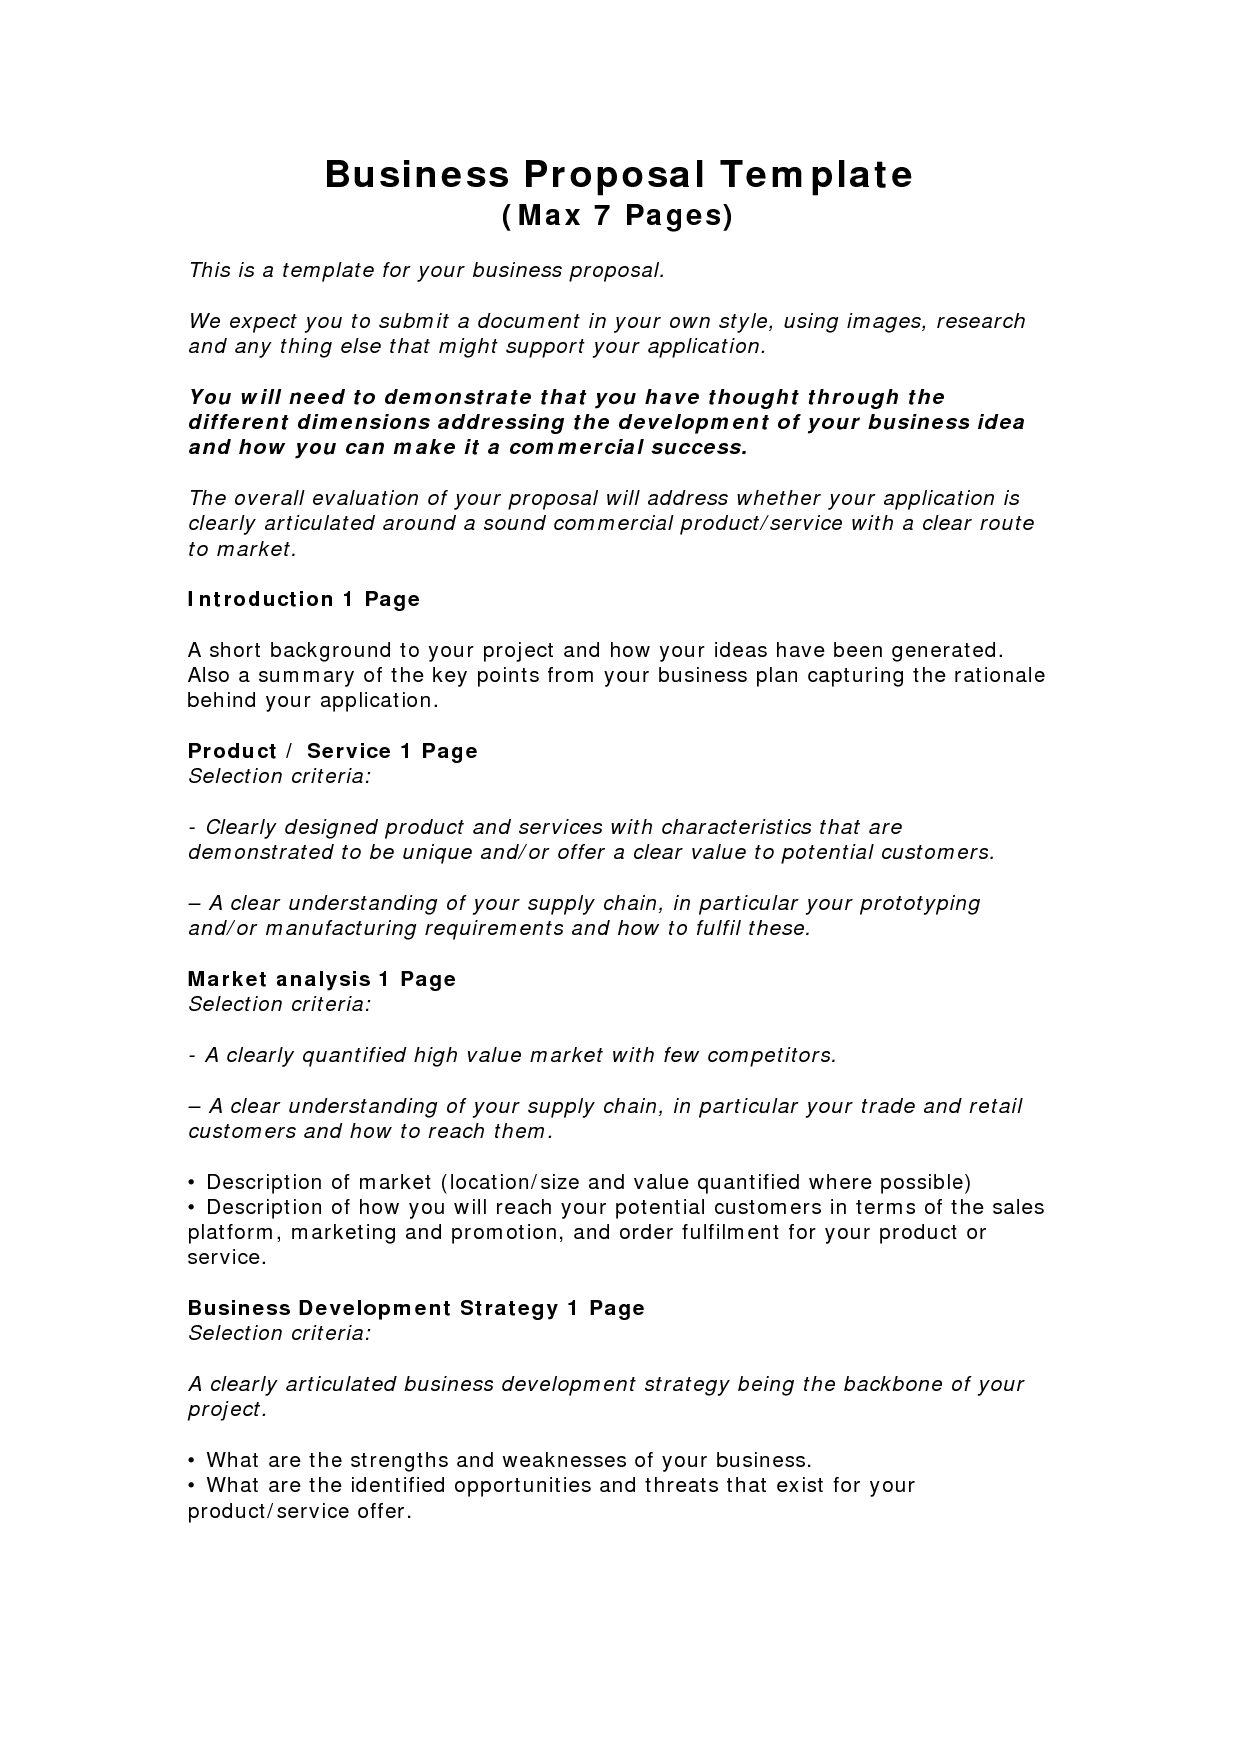 Business Proposal Templates Examples Business Proposal Template - How to draft a business plan template